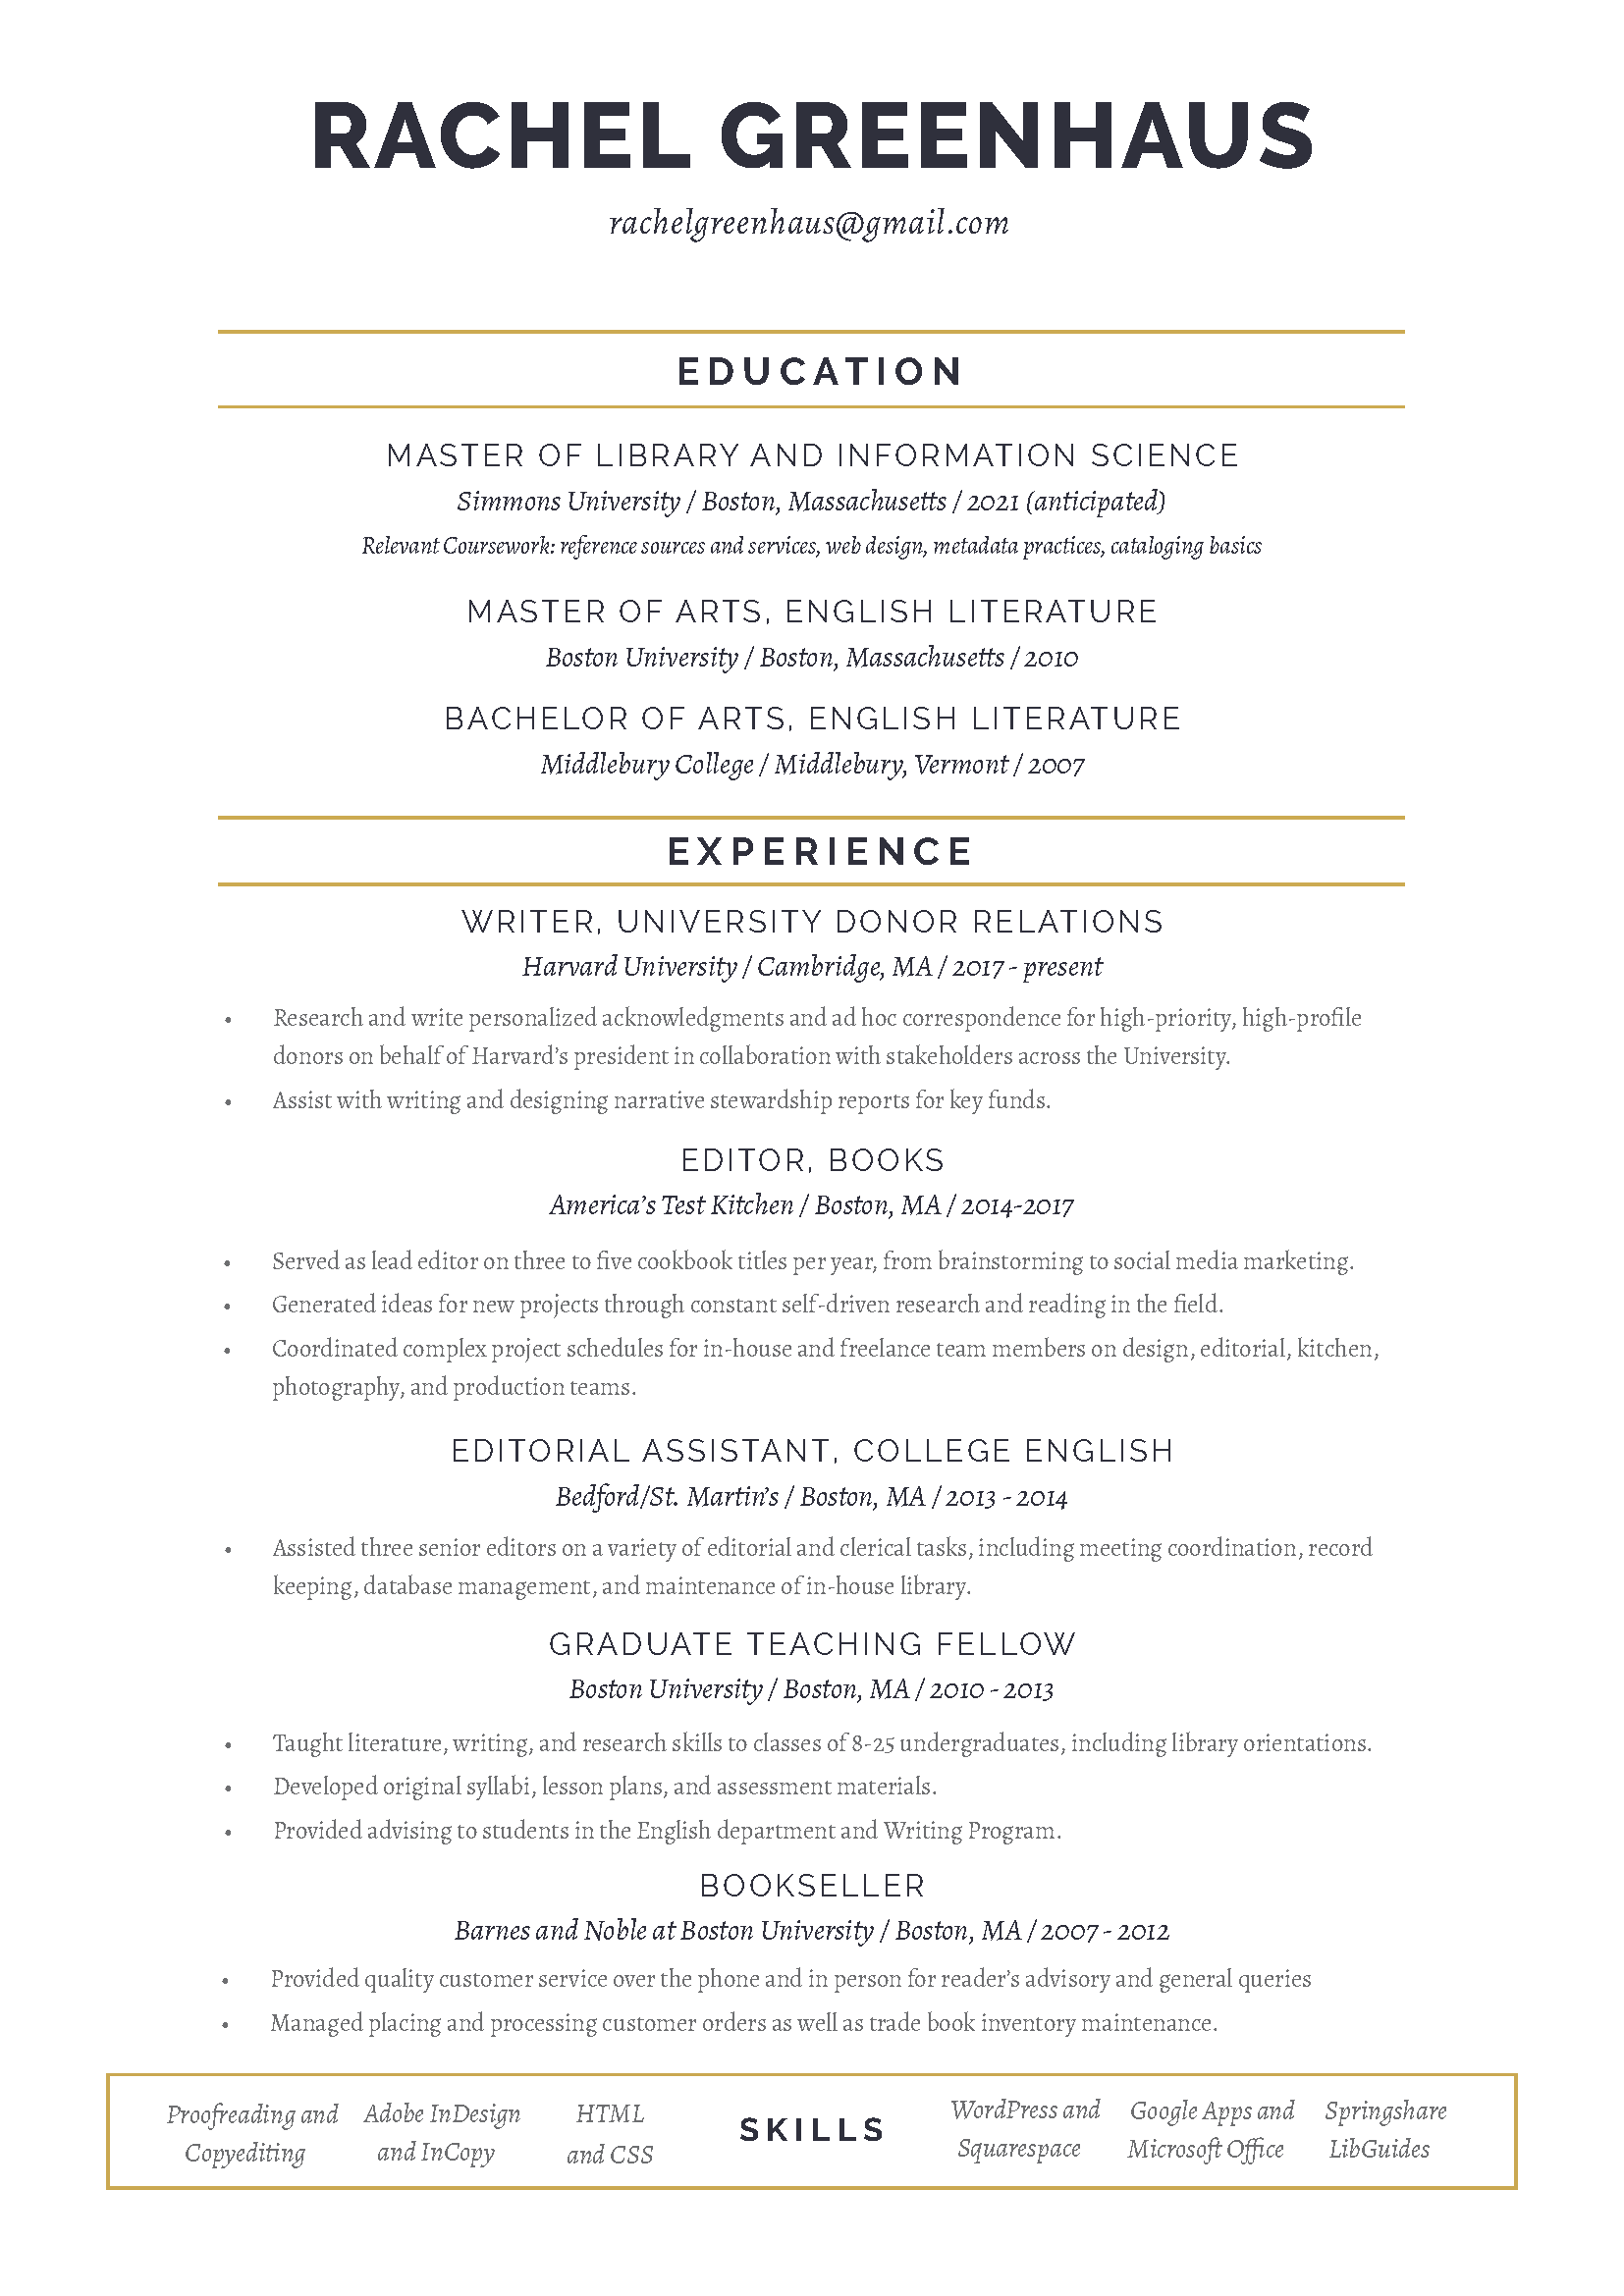 greenhaus cv web draft 5-10-19_Page_1.png